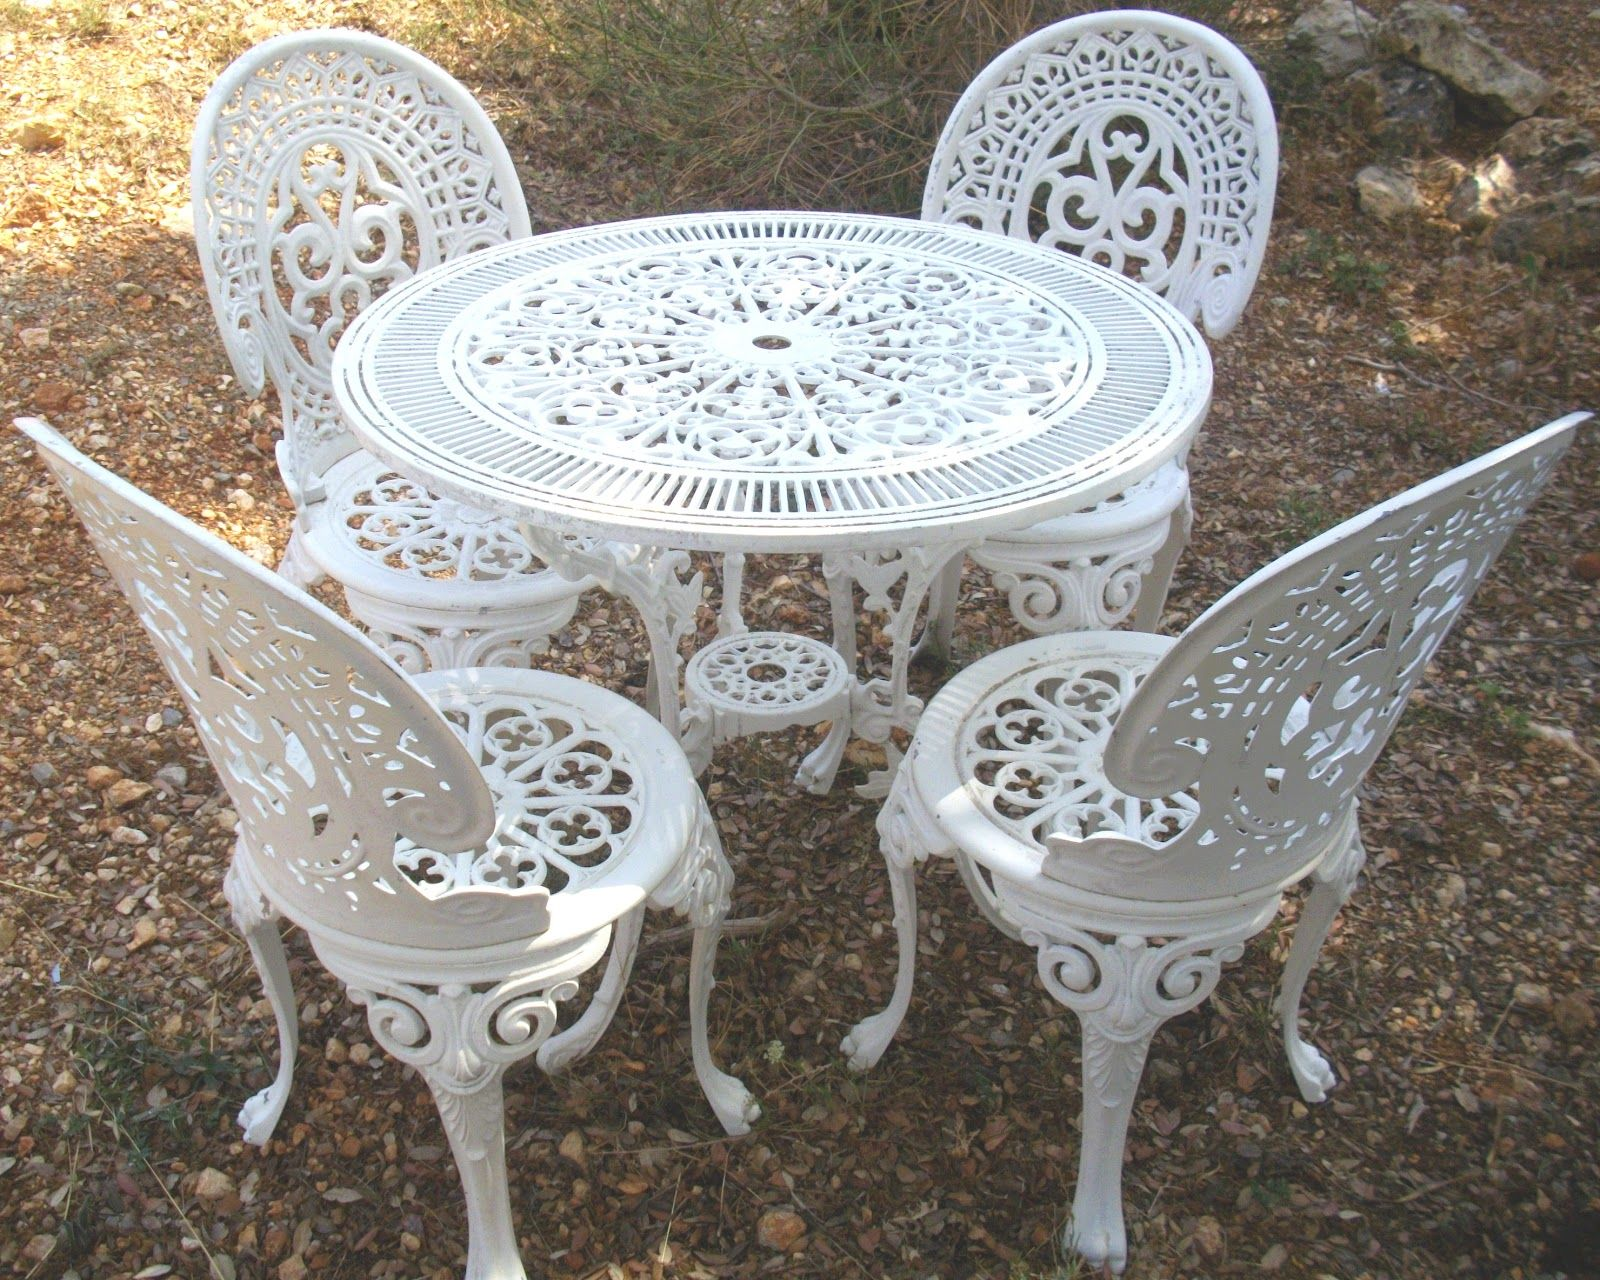 Salon De Jardin Fer Forgé Ancien Source Google Image Http Www Archcity Co Wp Content Uploads 201 Table Et Chaises De Jardin Chaise De Jardin Mobilier Jardin